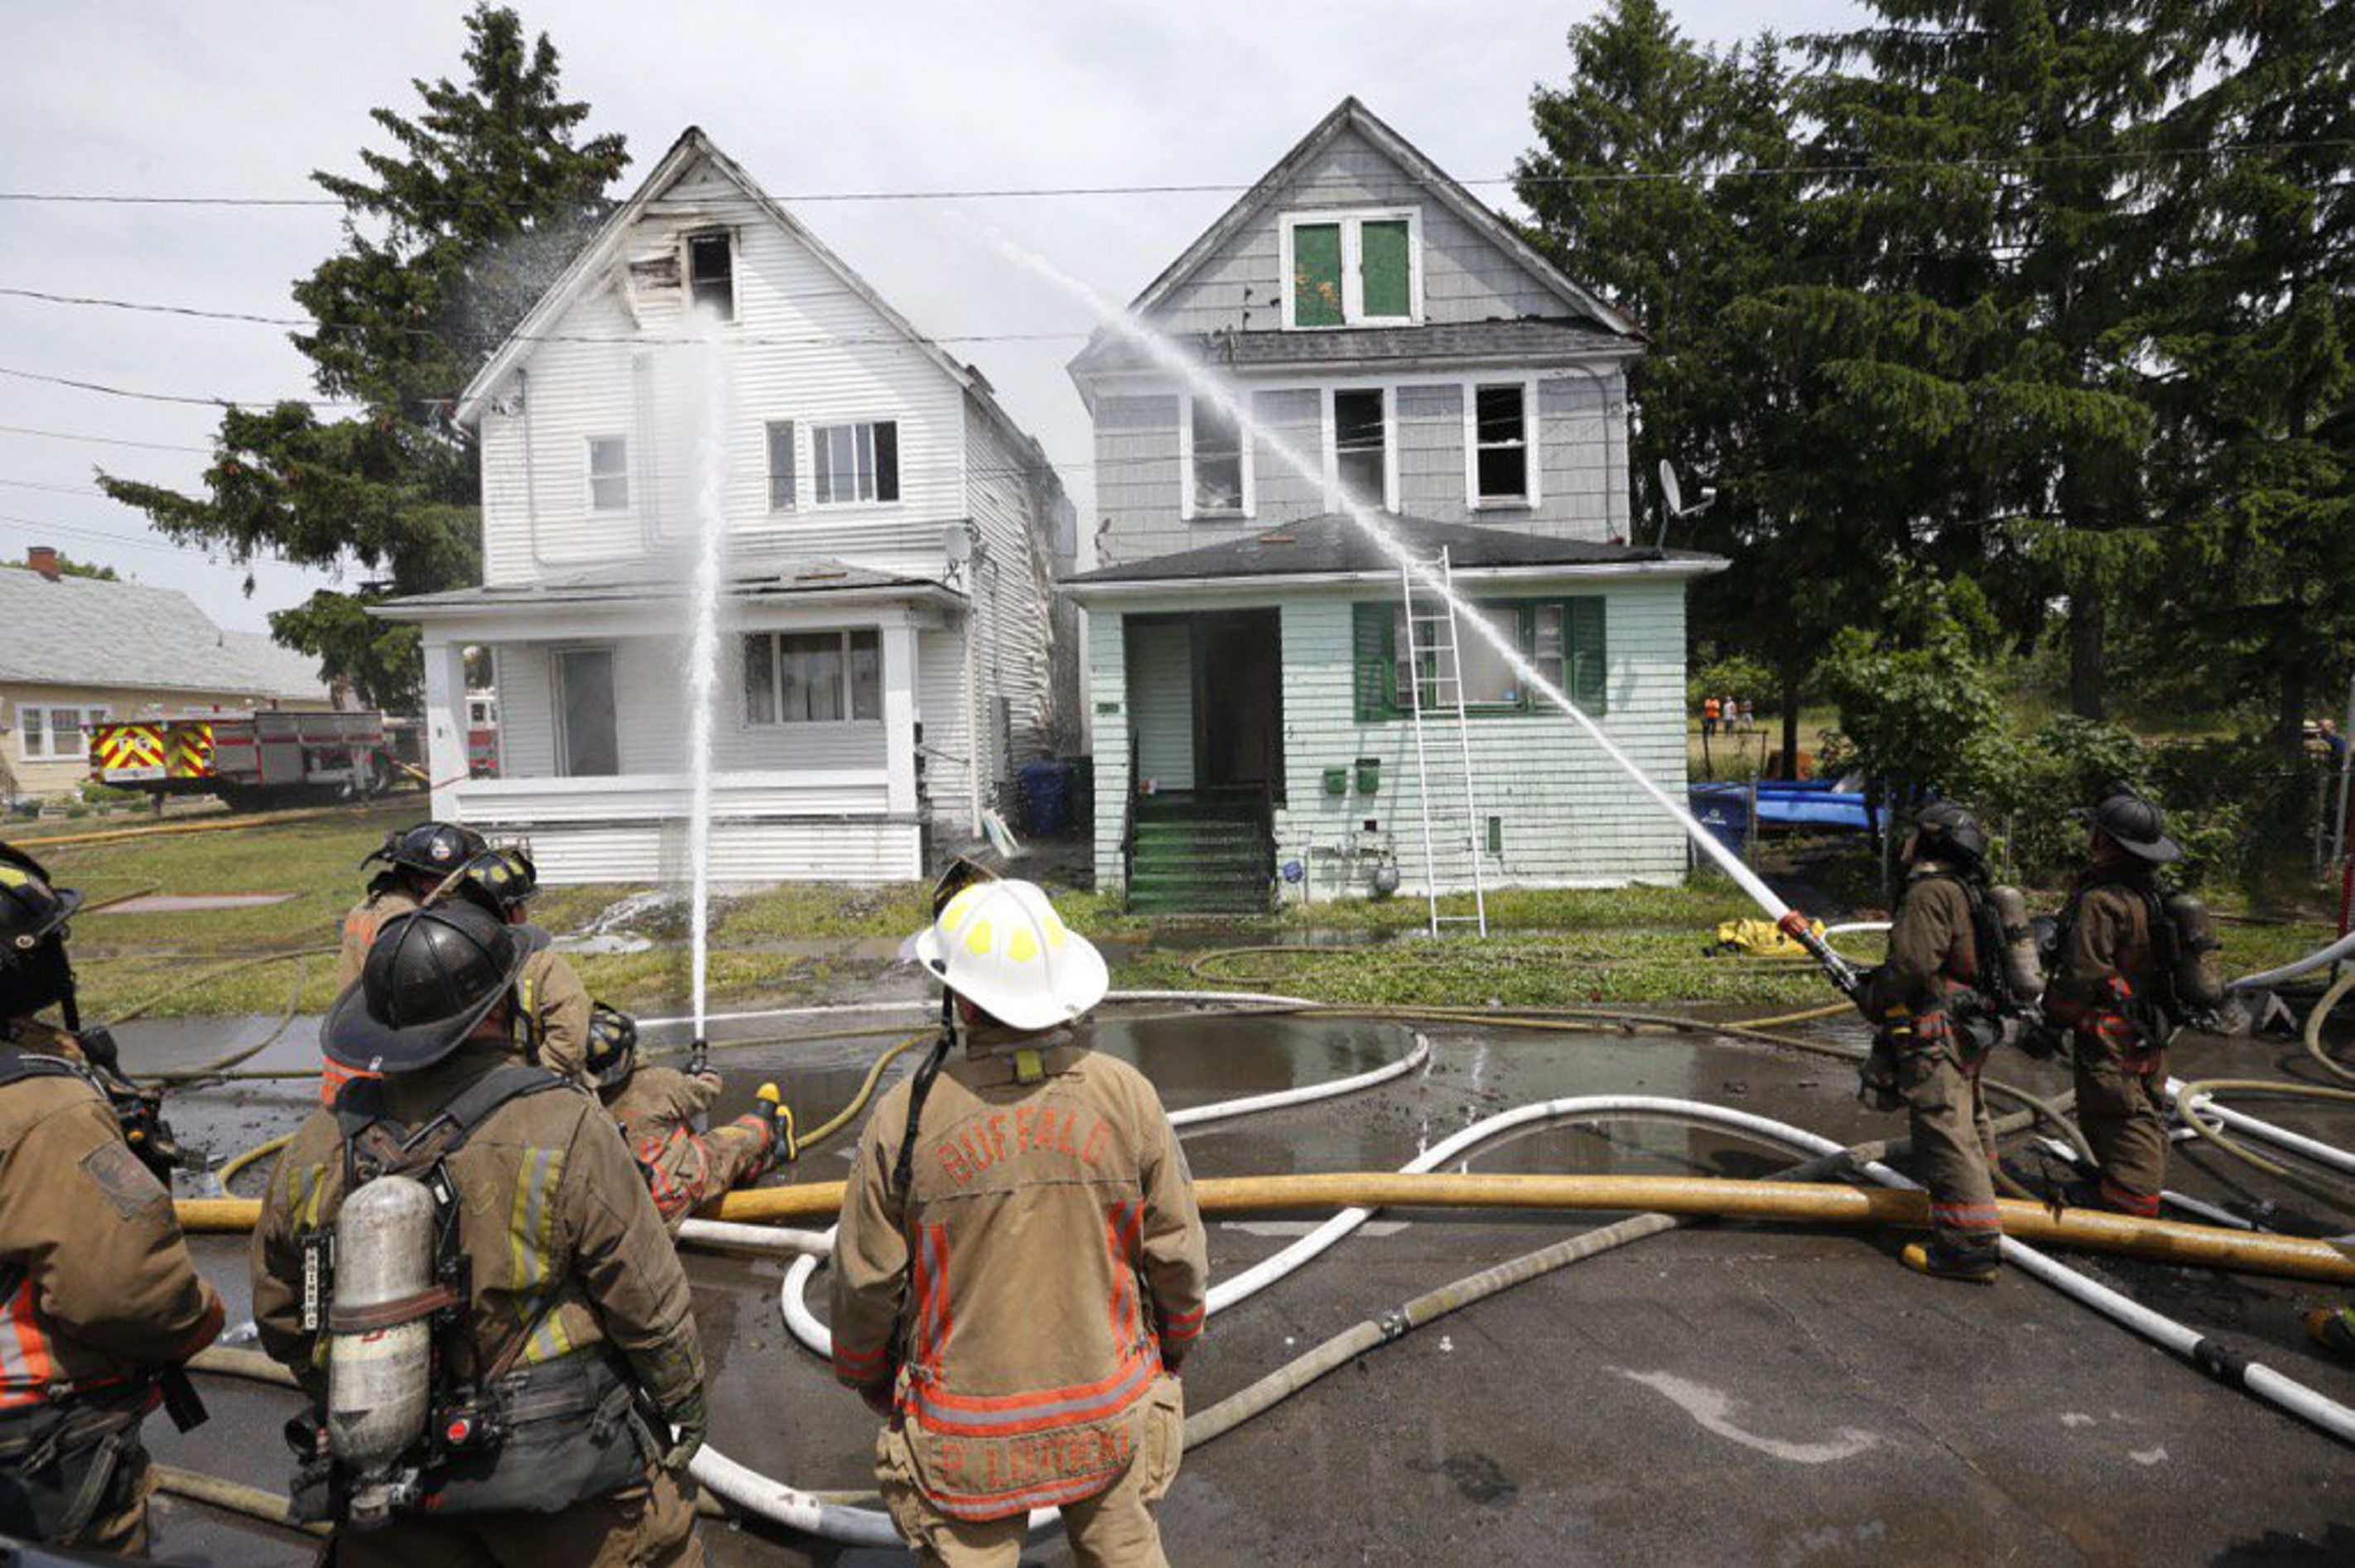 Firefighters battled a fire in two homes on Swinburne Street on Buffalo's East Side that spread due to high winds. (Derek Gee/Buffalo News)